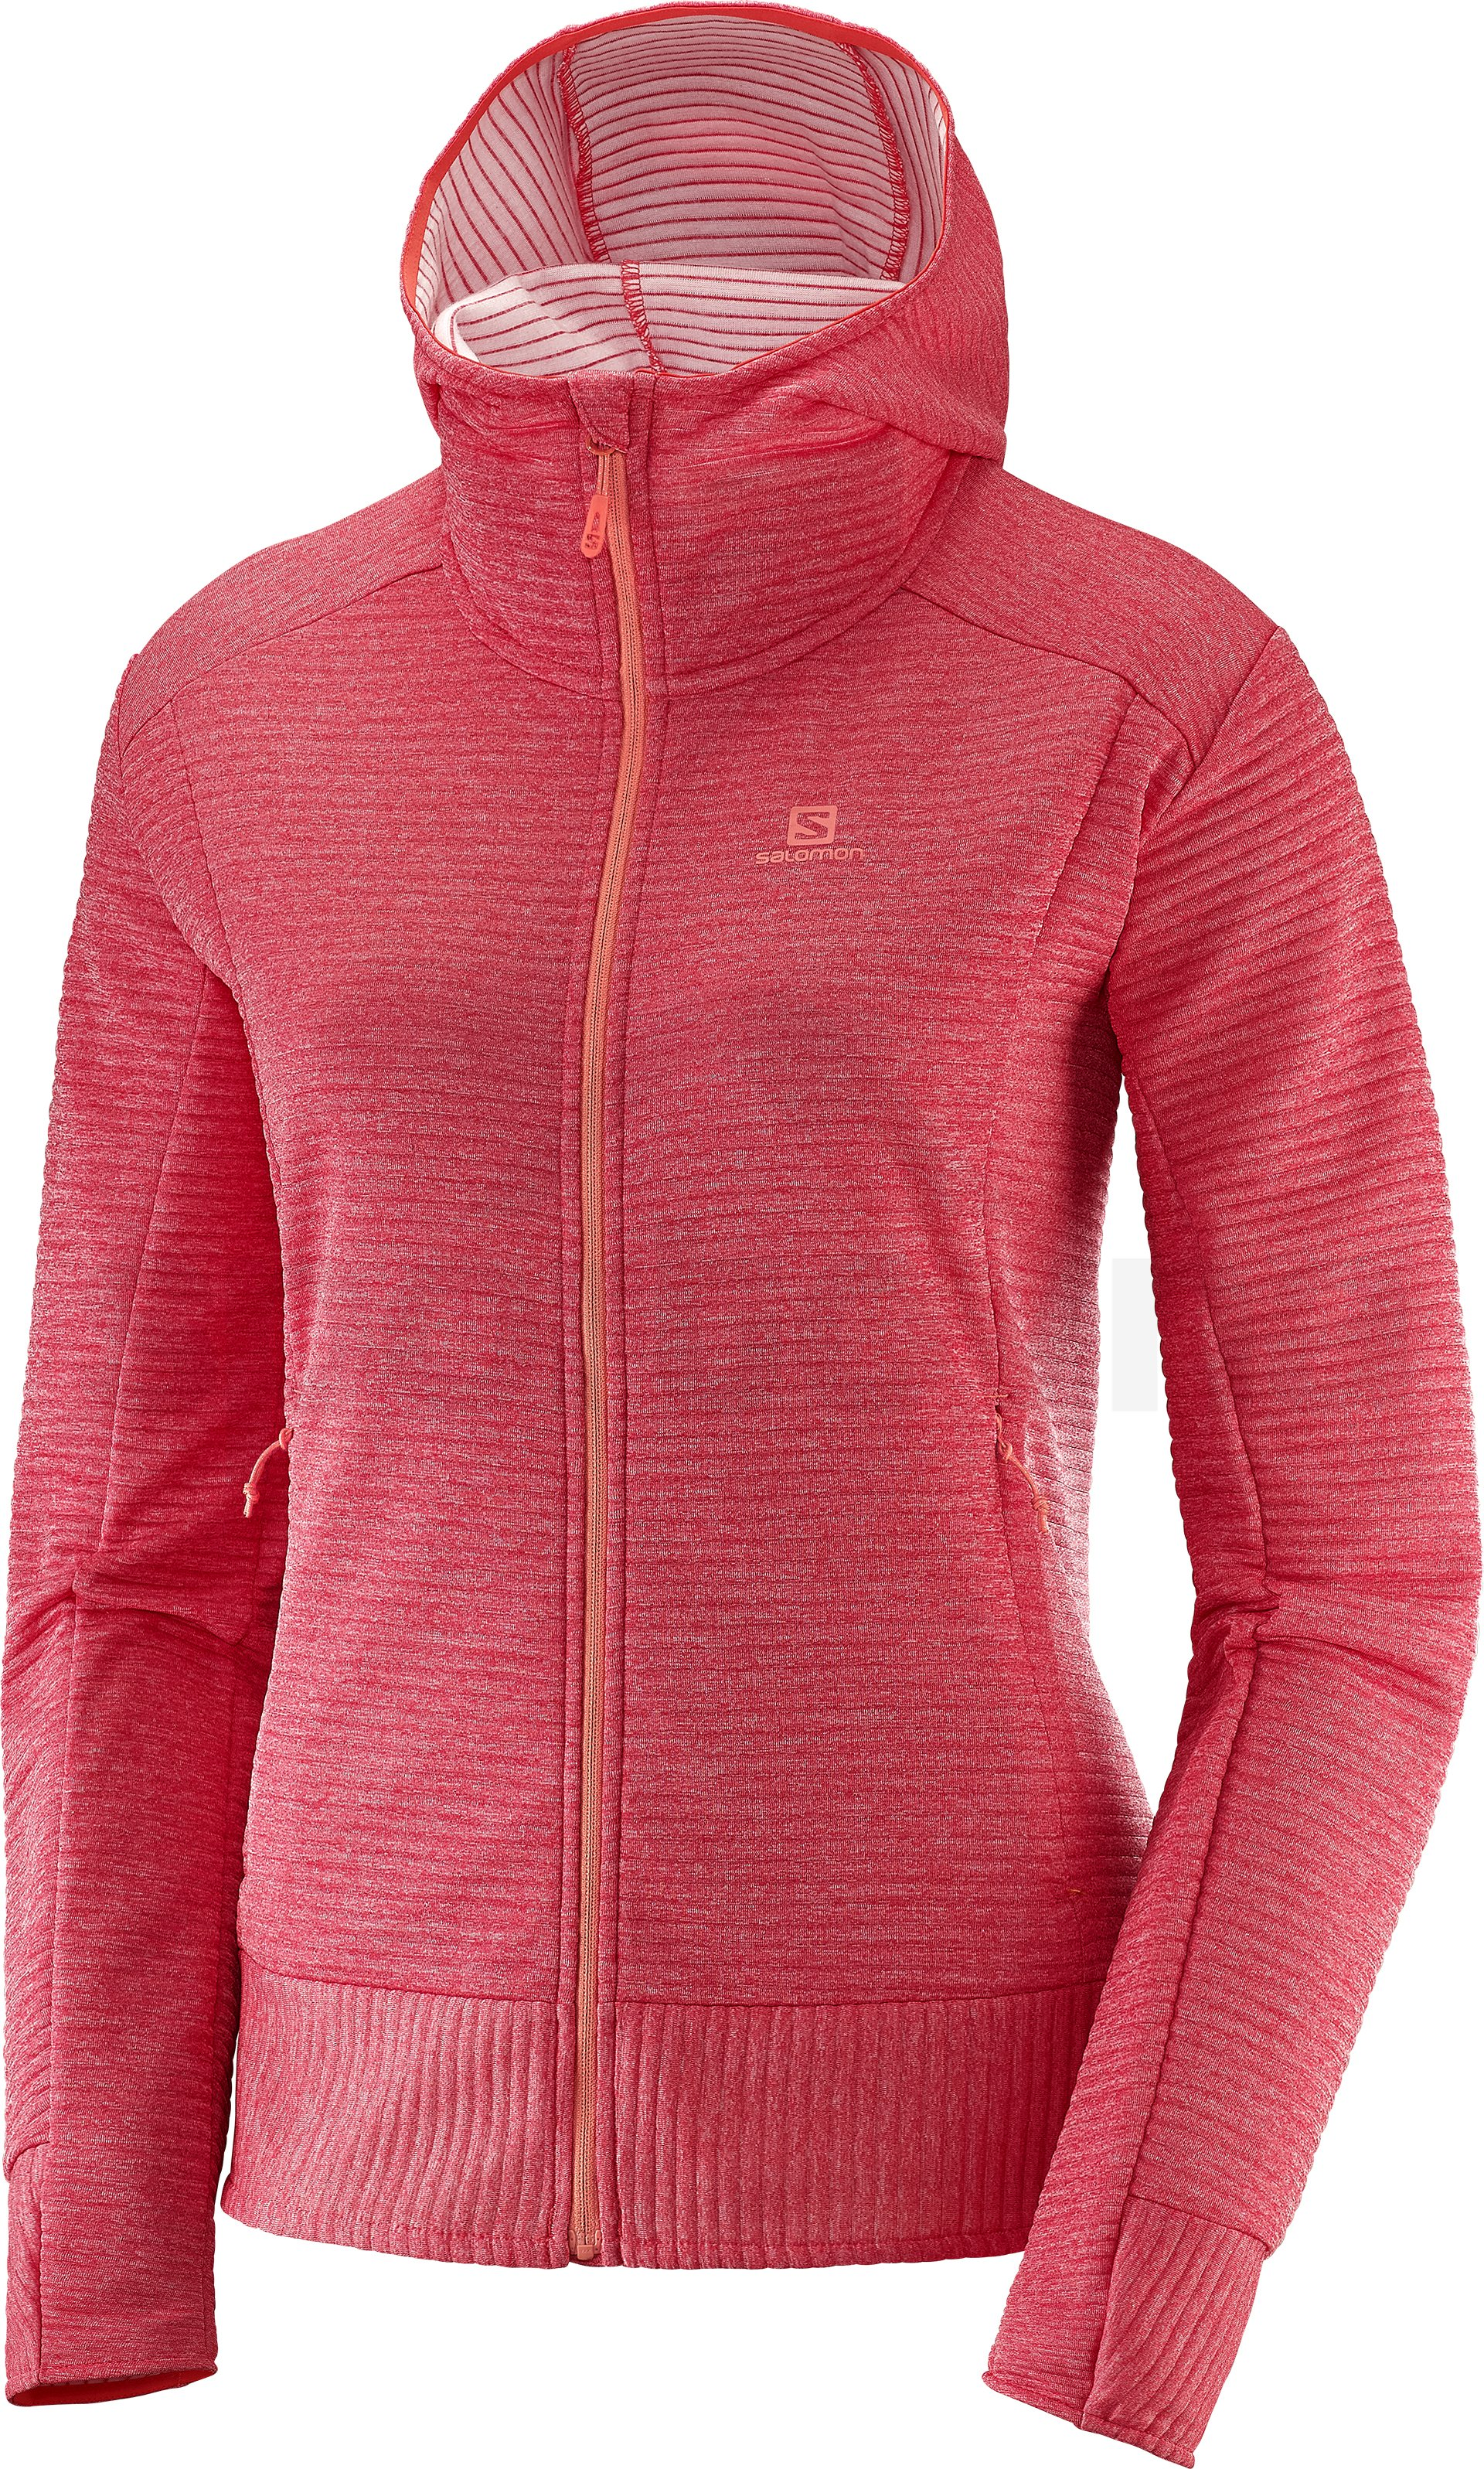 L40370000_0_w_rightnicemidhoodie_hibiscus_outdoor.jpg.originalr